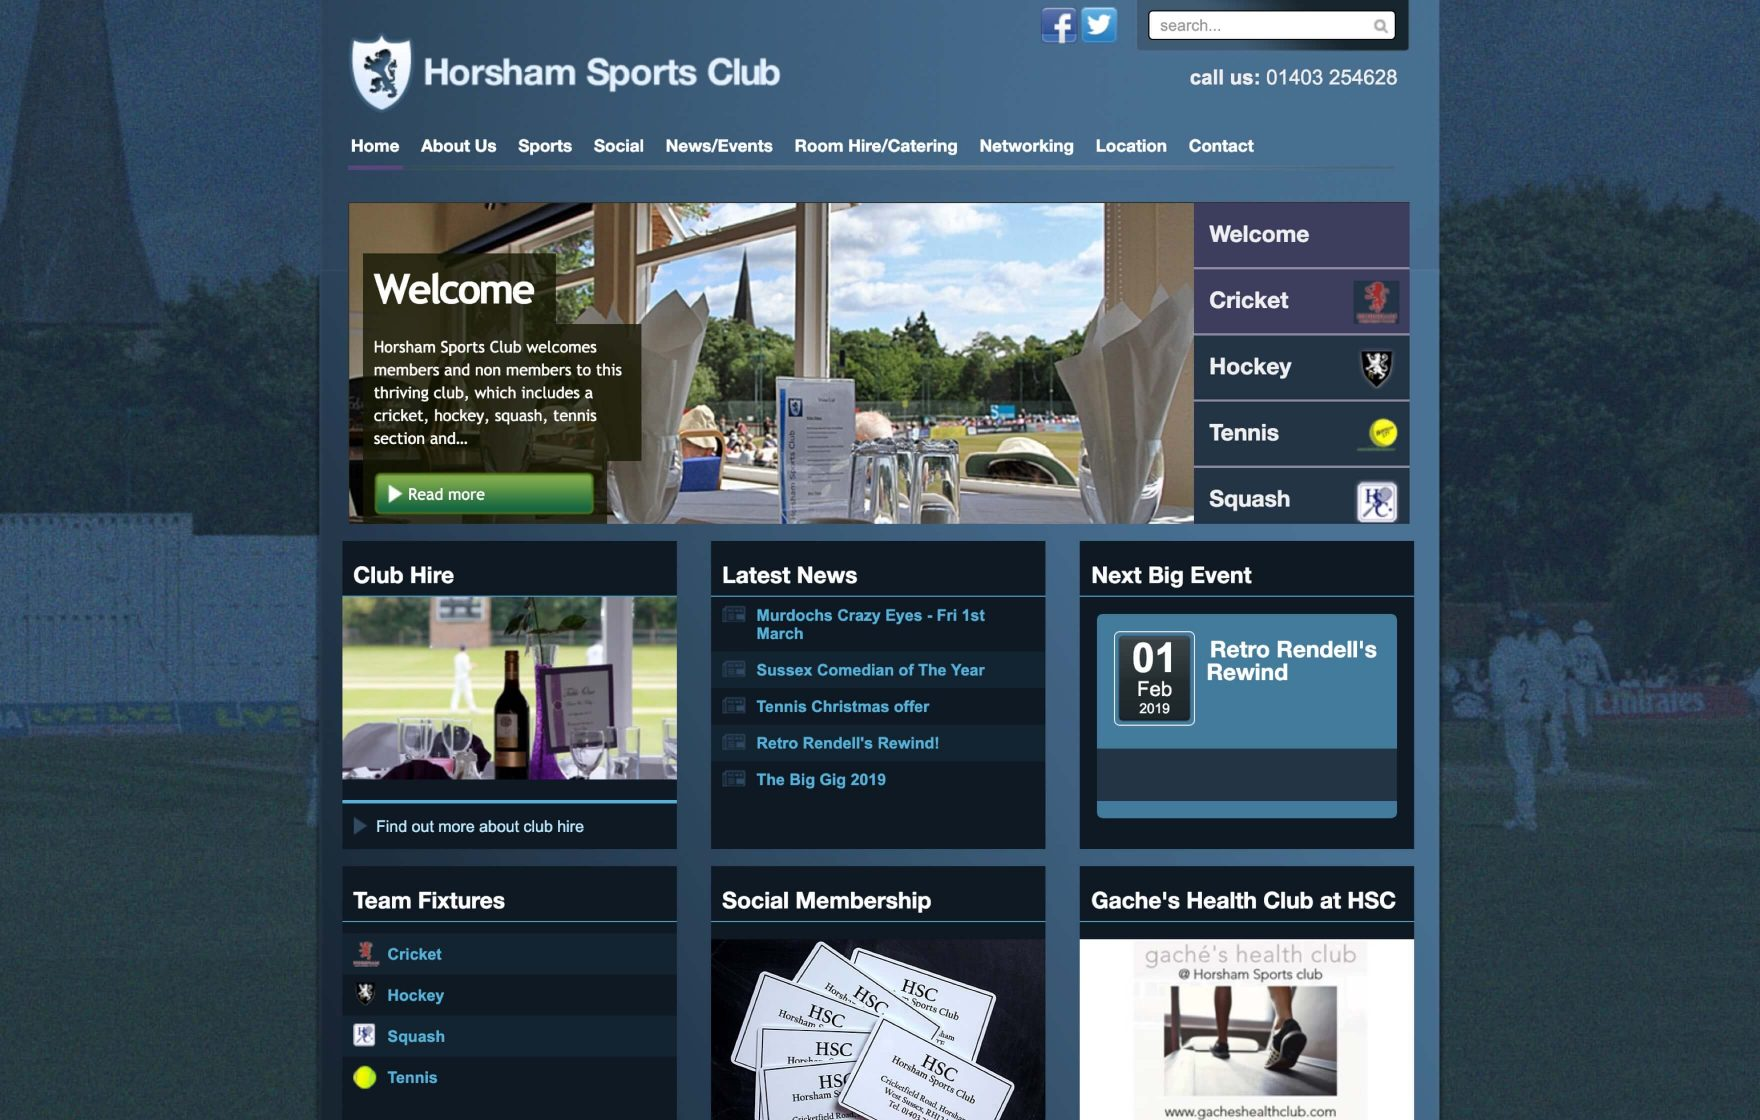 The old Horsham Sports Club website © Jeremy Hickman